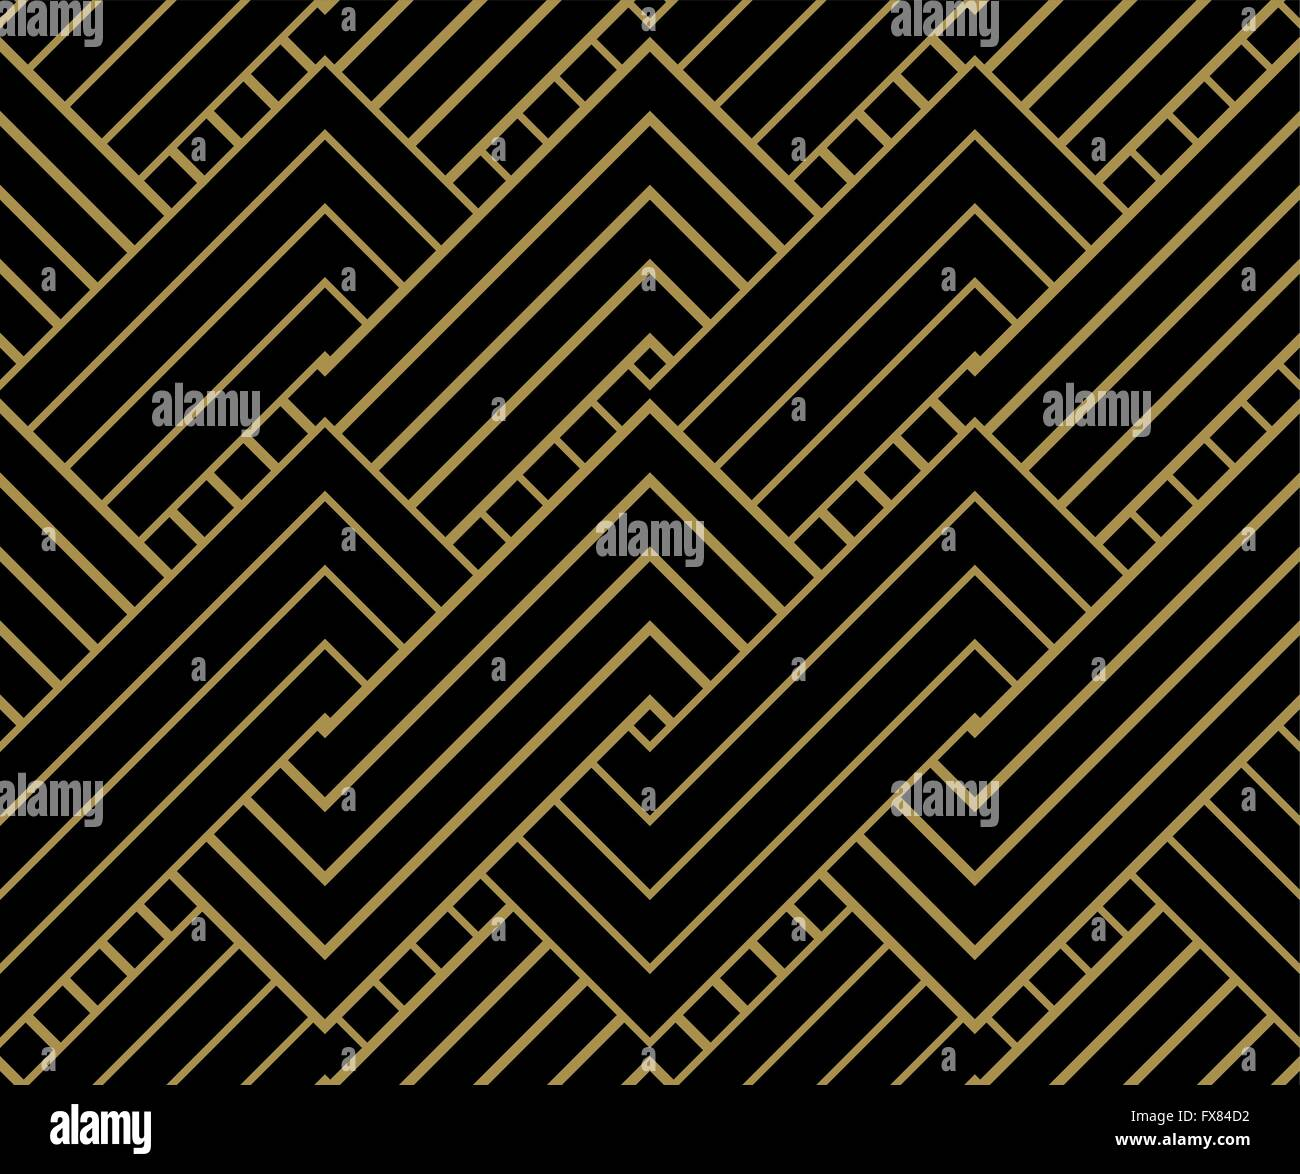 Geometric Gold shapes Background. Striped gold on black geometric pattern. Vector illustration. - Stock Image